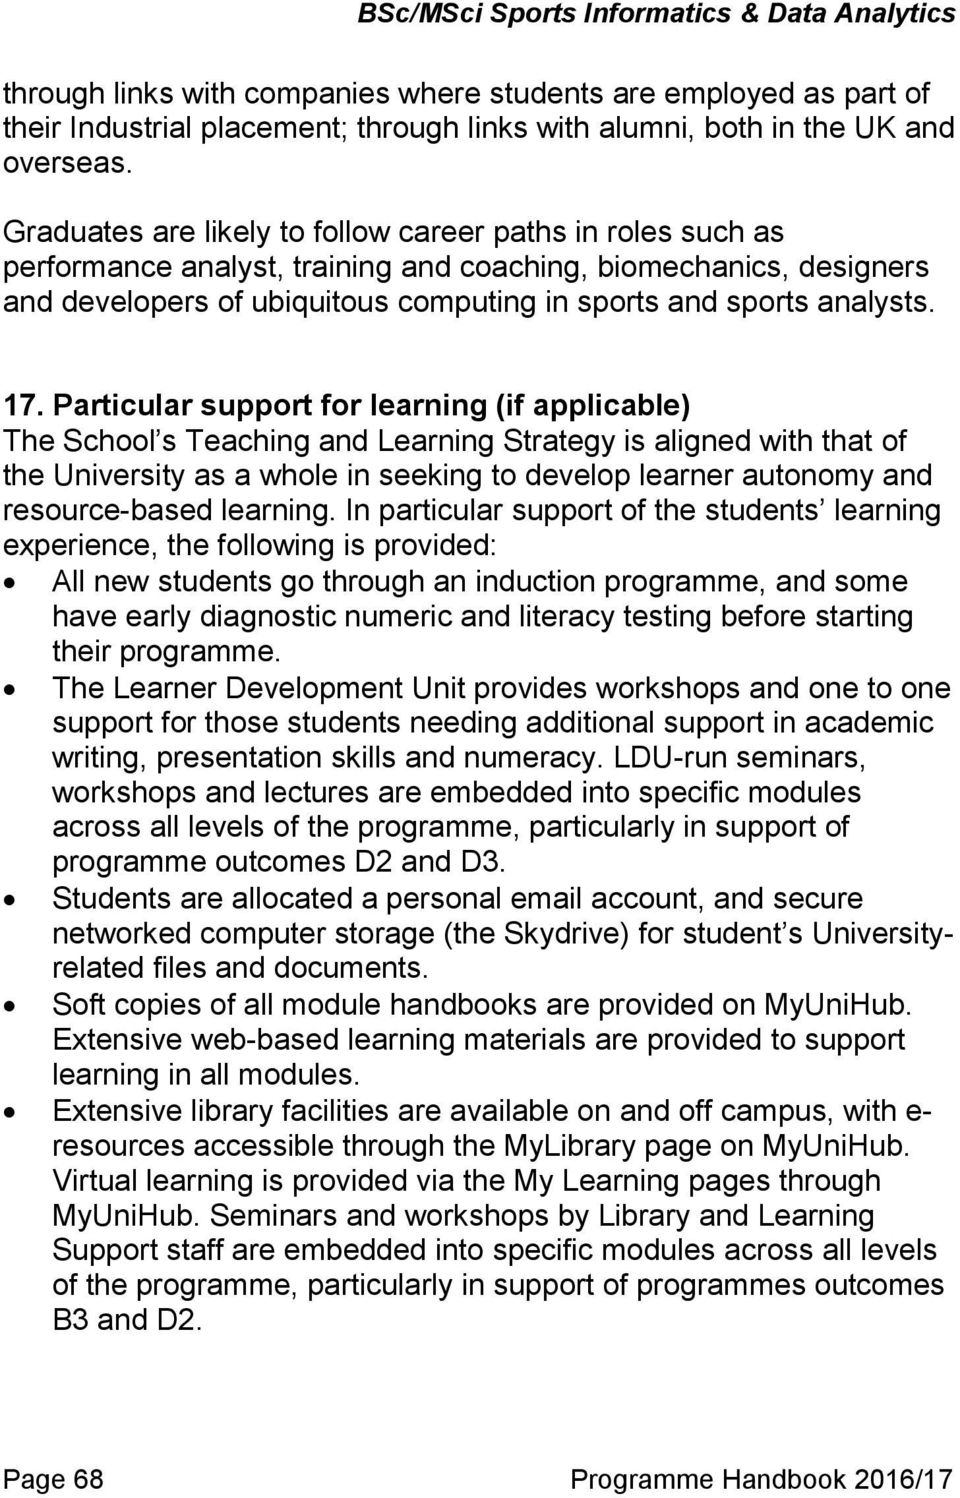 17. Particular support for learning (if applicable) The School s Teaching and Learning Strategy is aligned with that of the University as a whole in seeking to develop learner autonomy and